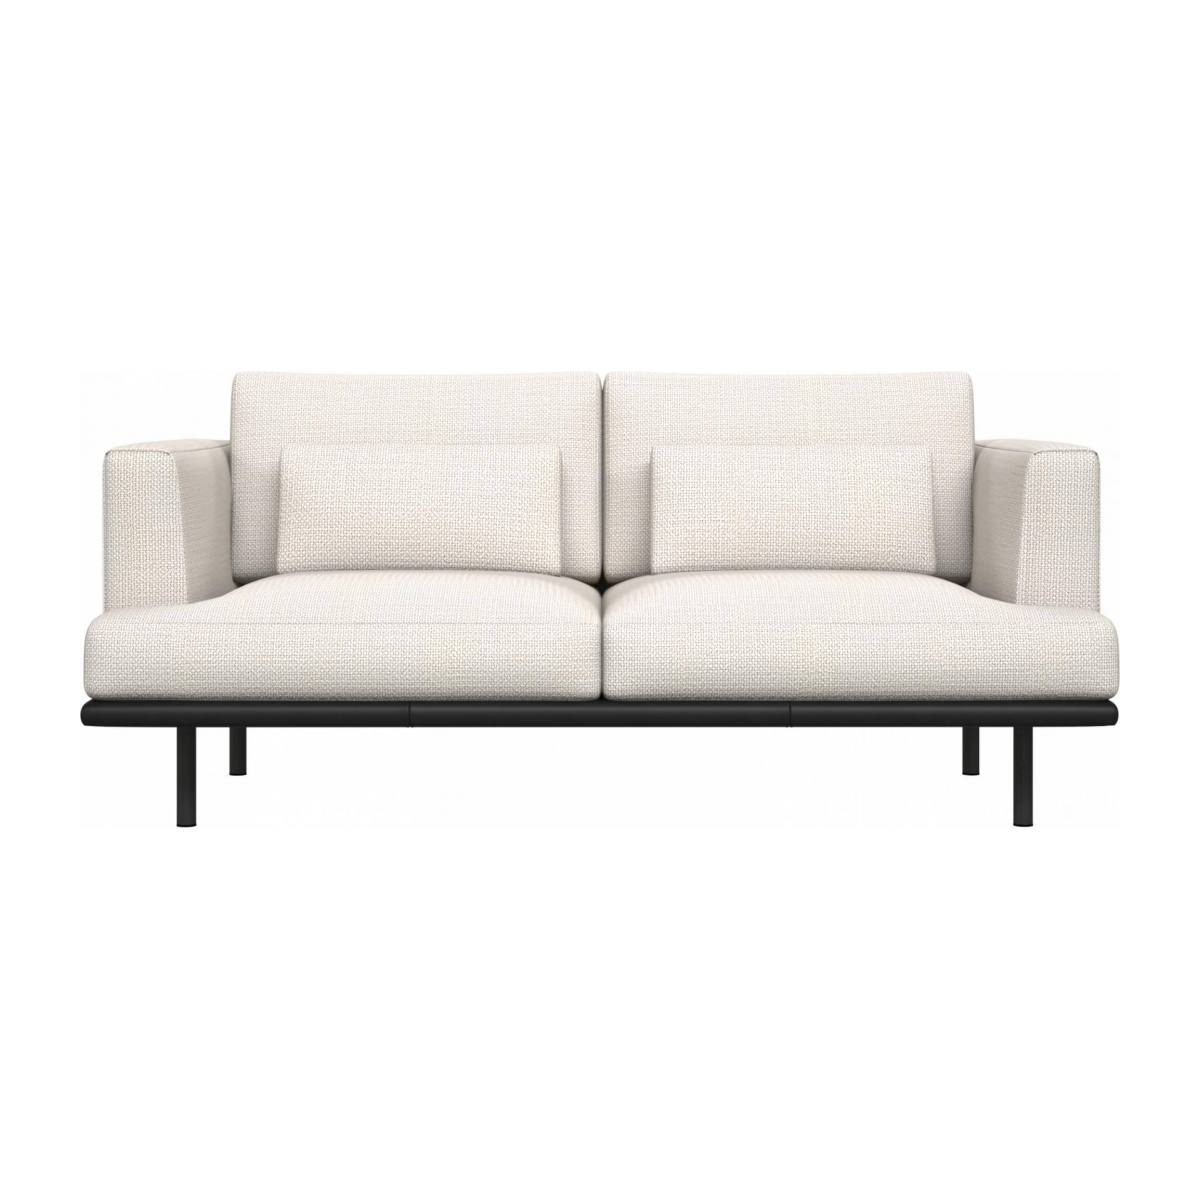 2 seater sofa in Fasoli fabric, snow white with base in black leather n°1